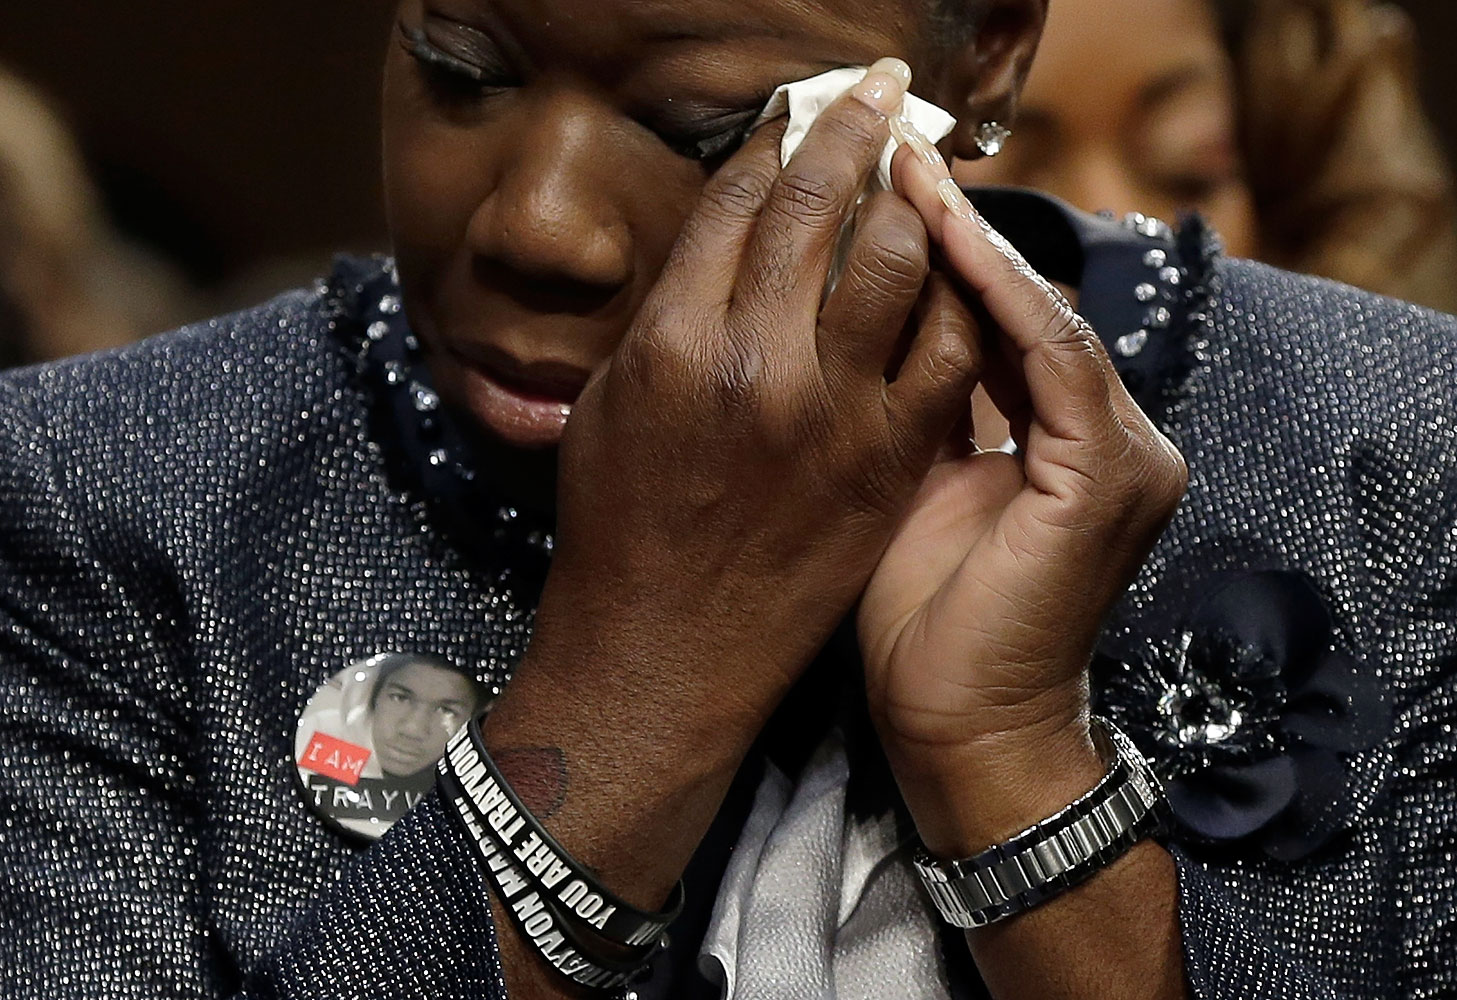 Sybrina Fulton of Miami, Fla., mother of Trayvon Martin, wipes her eyes during a Senate Judiciary Committee hearing on  Stand Your Ground  laws Oct. 29, 2013 in Washington, DC.